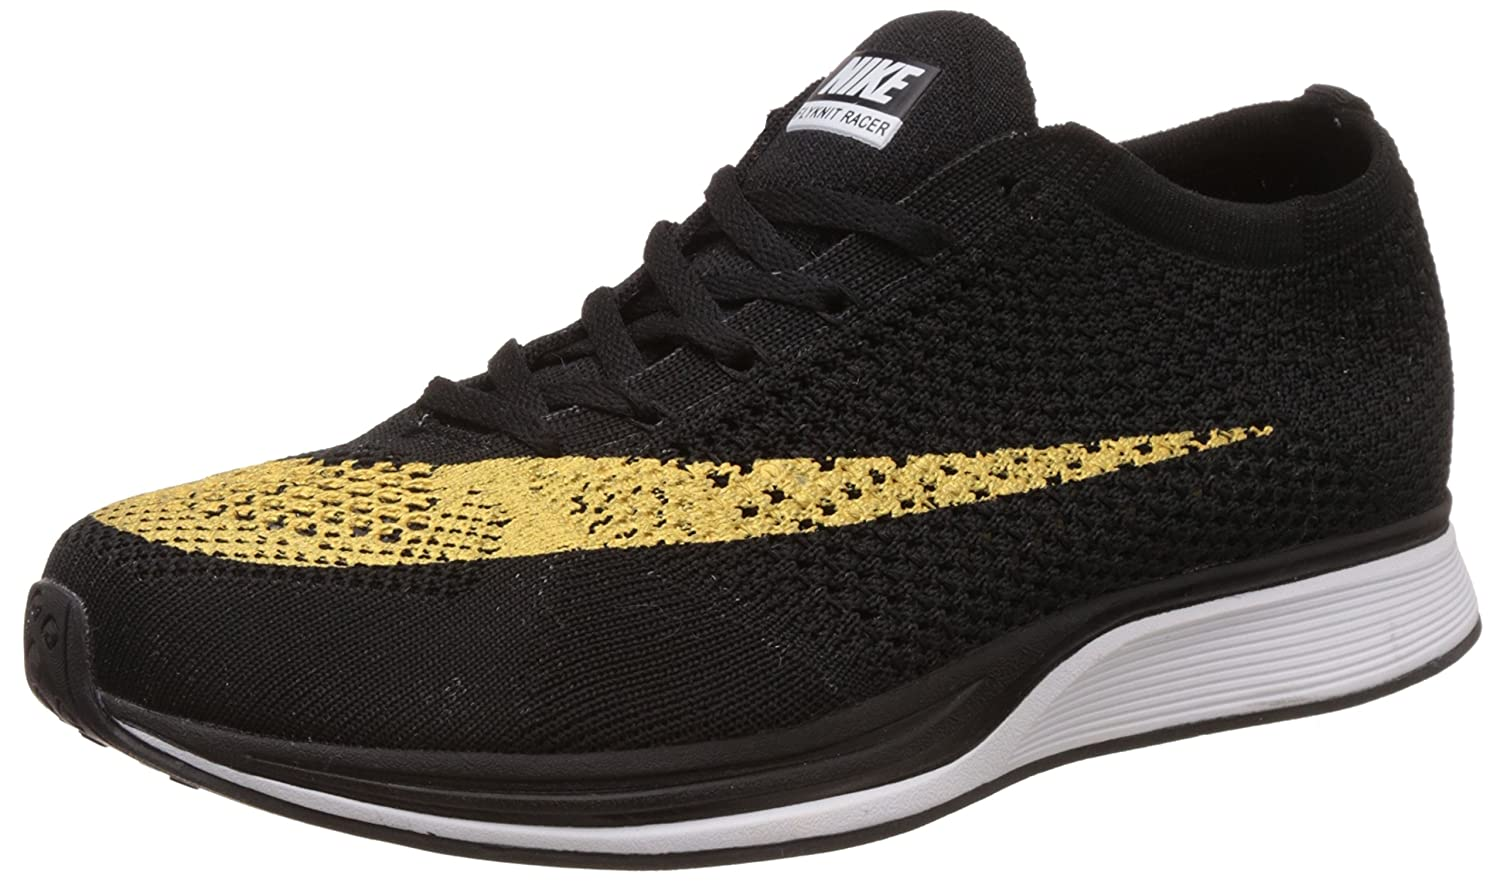 Nike Men's Flyknit Racer Running Shoes: Buy Online at Low Prices in India -  Amazon.in